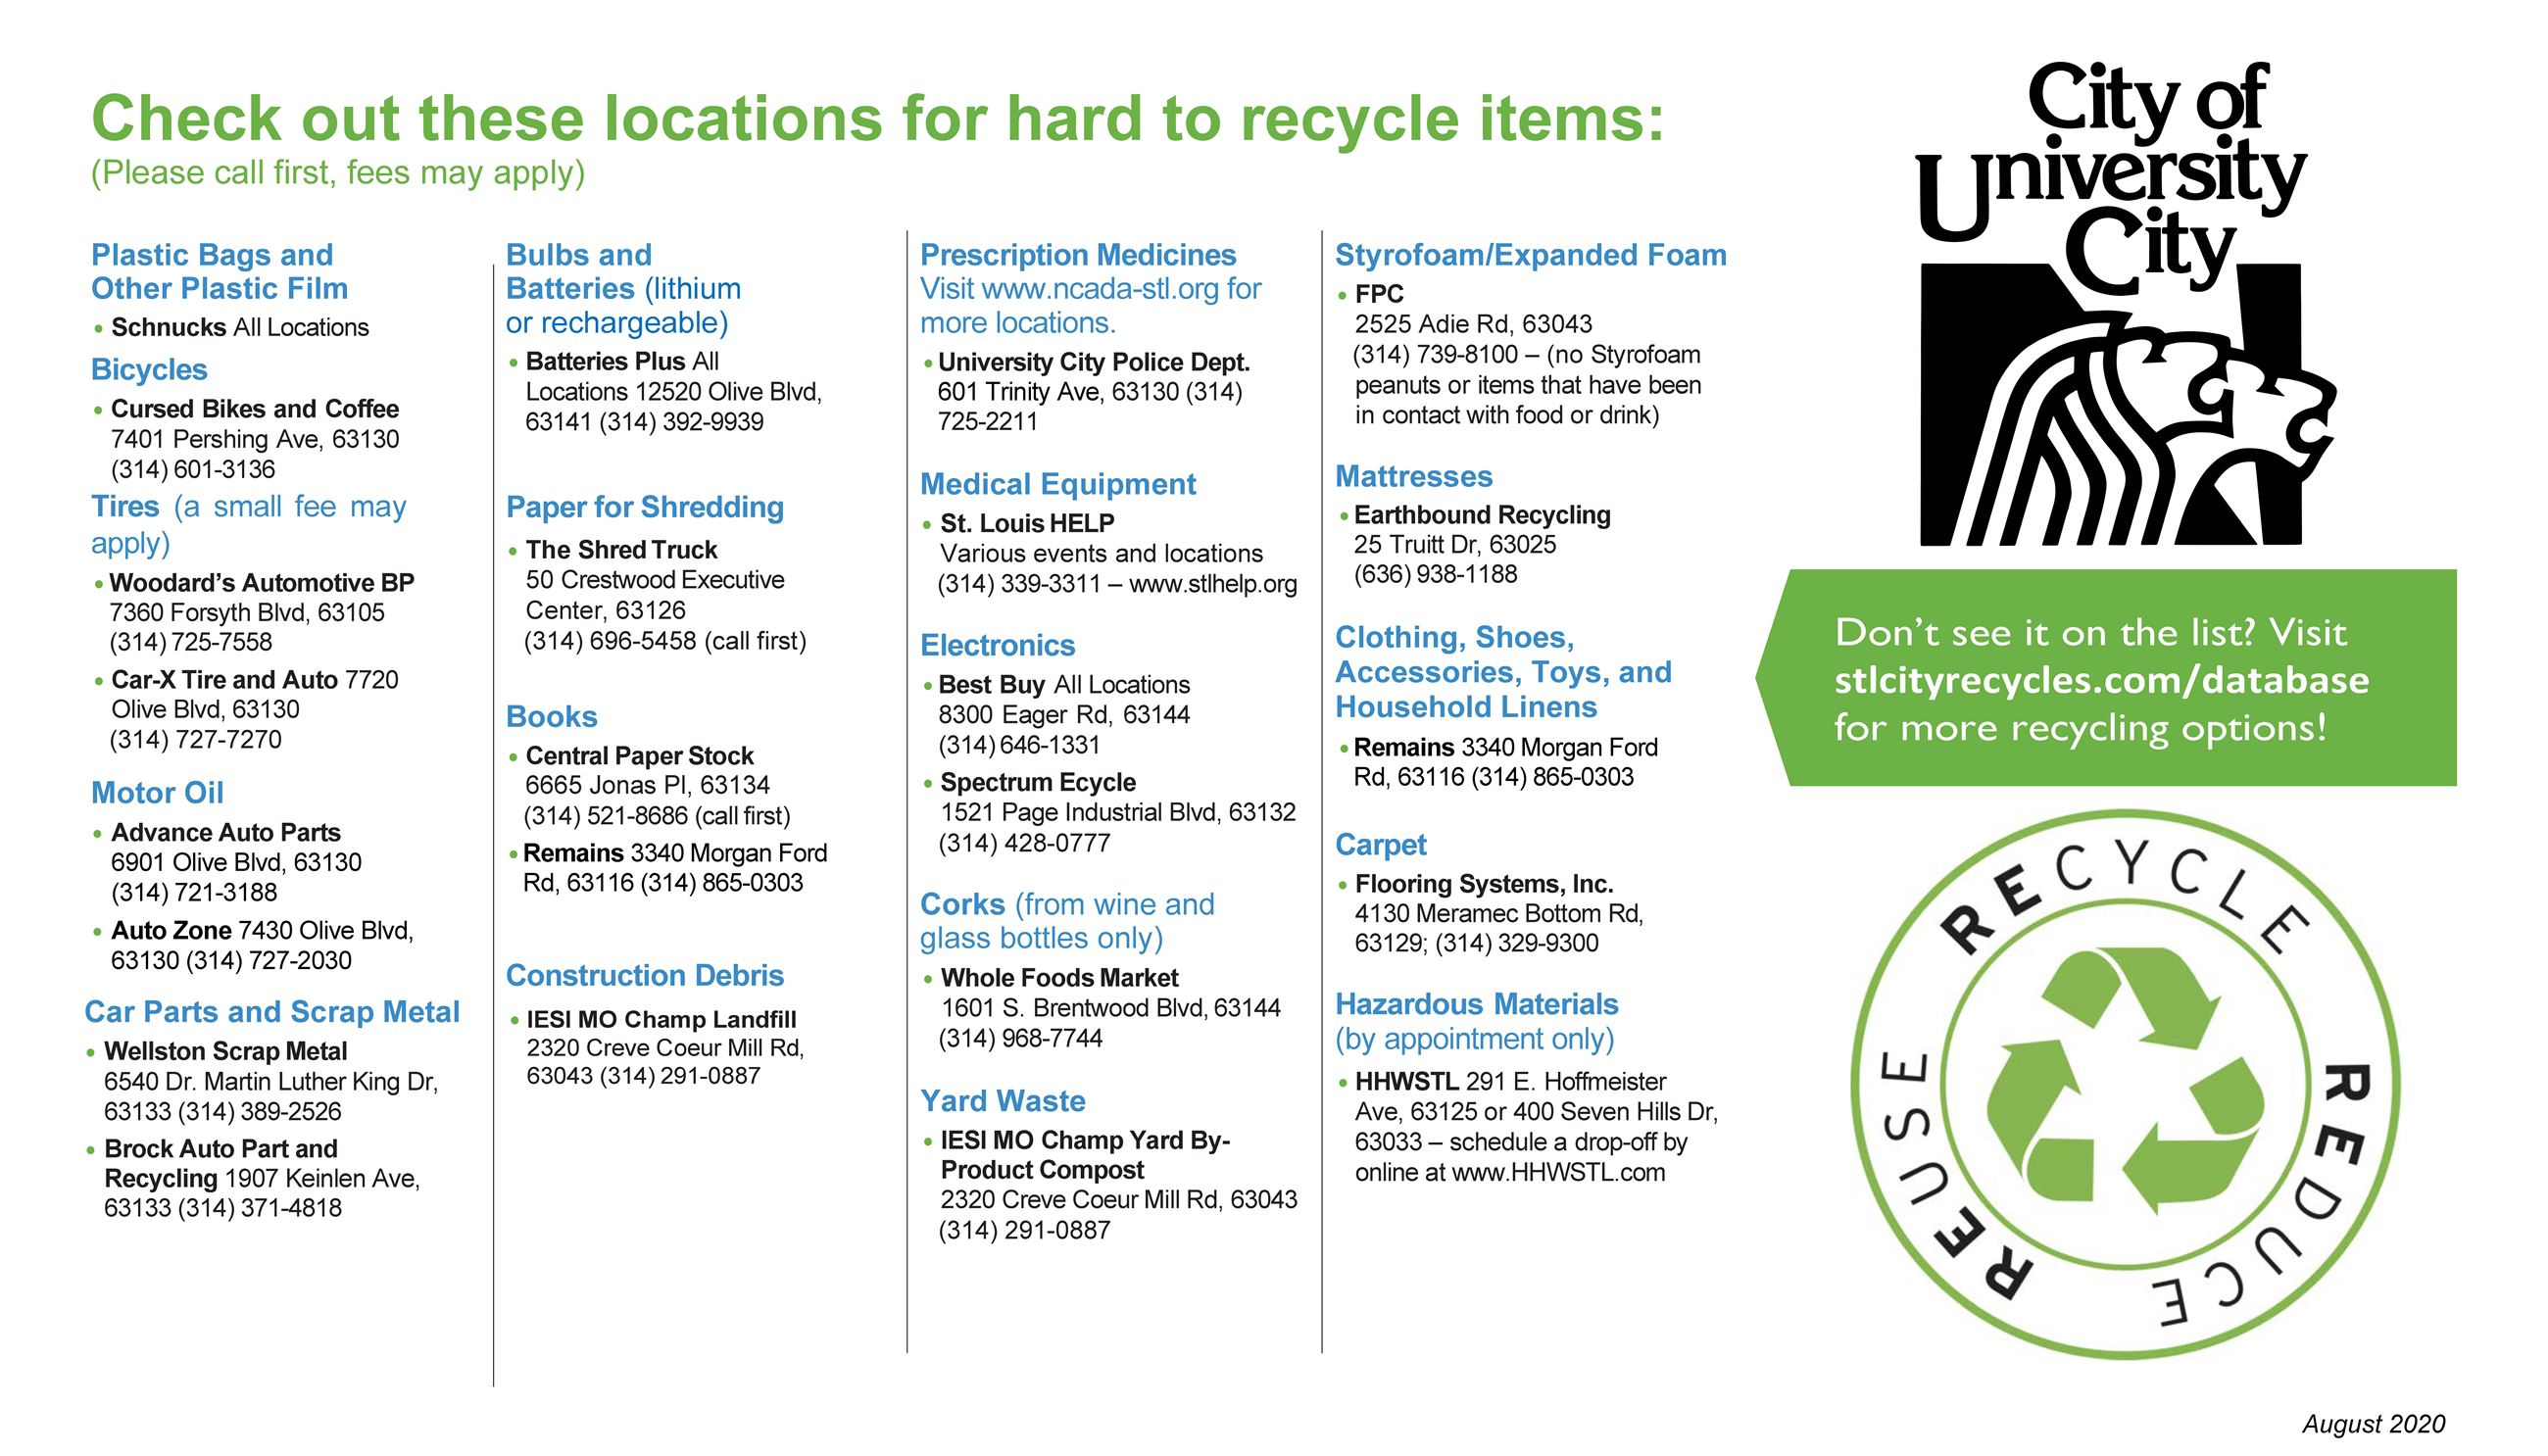 WHERE TO TAKE HARD TO RECYCLE ITEMS